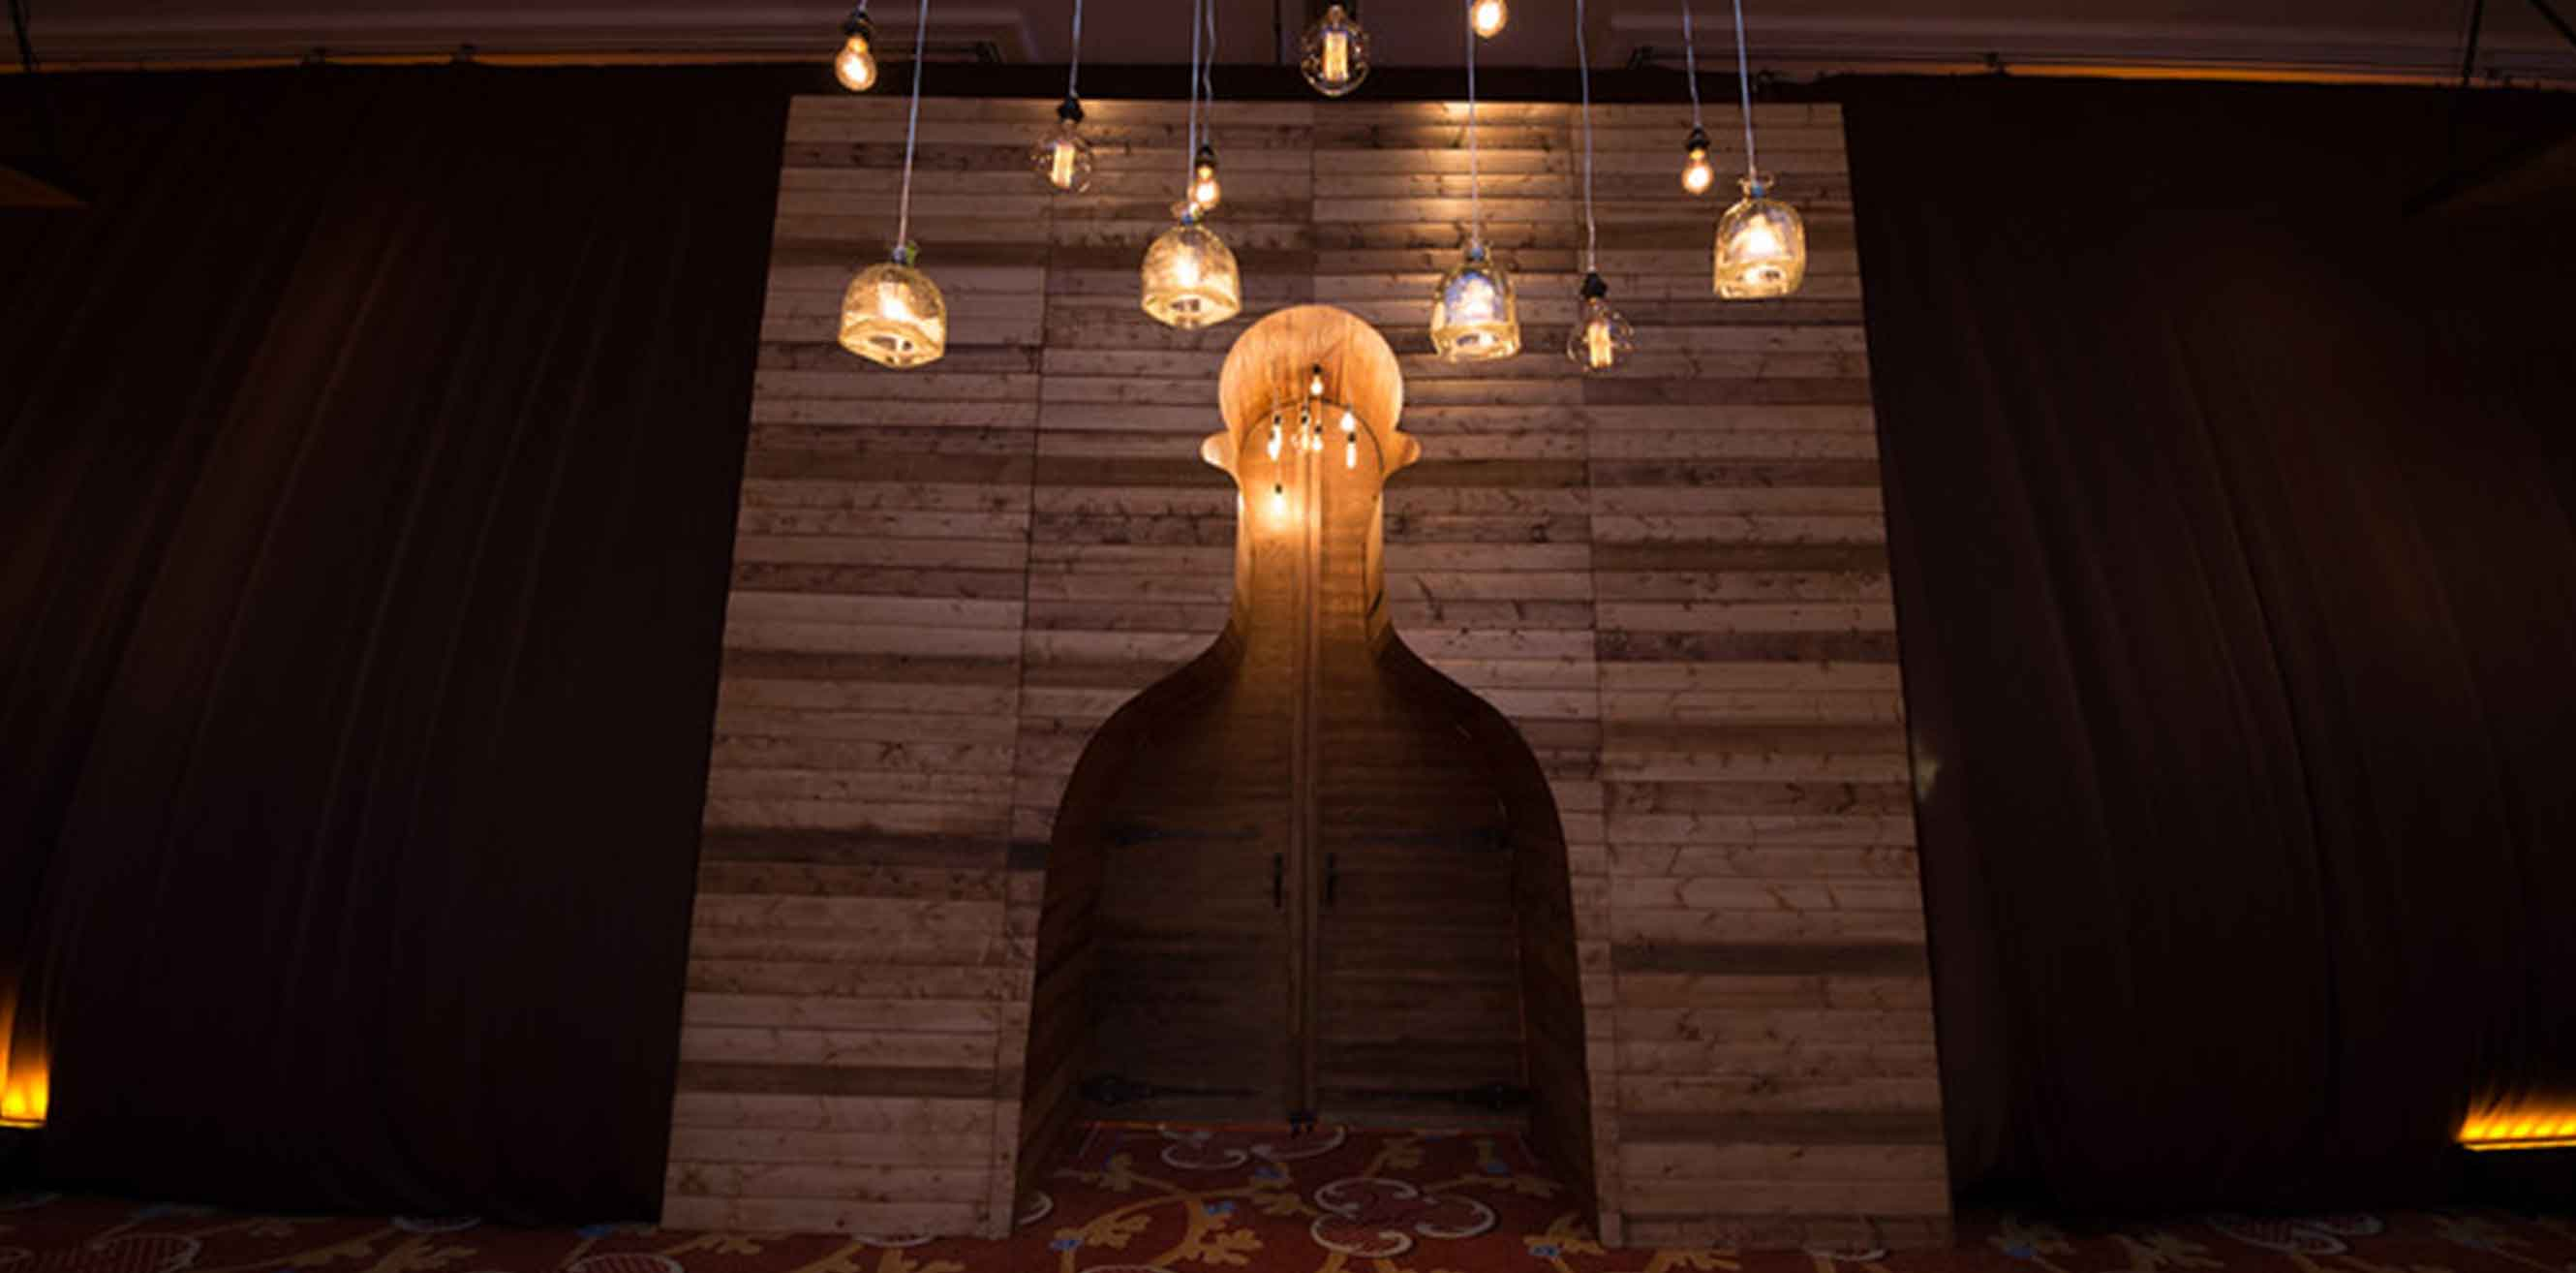 A wooden alcove with hanging Edison bulb lamps